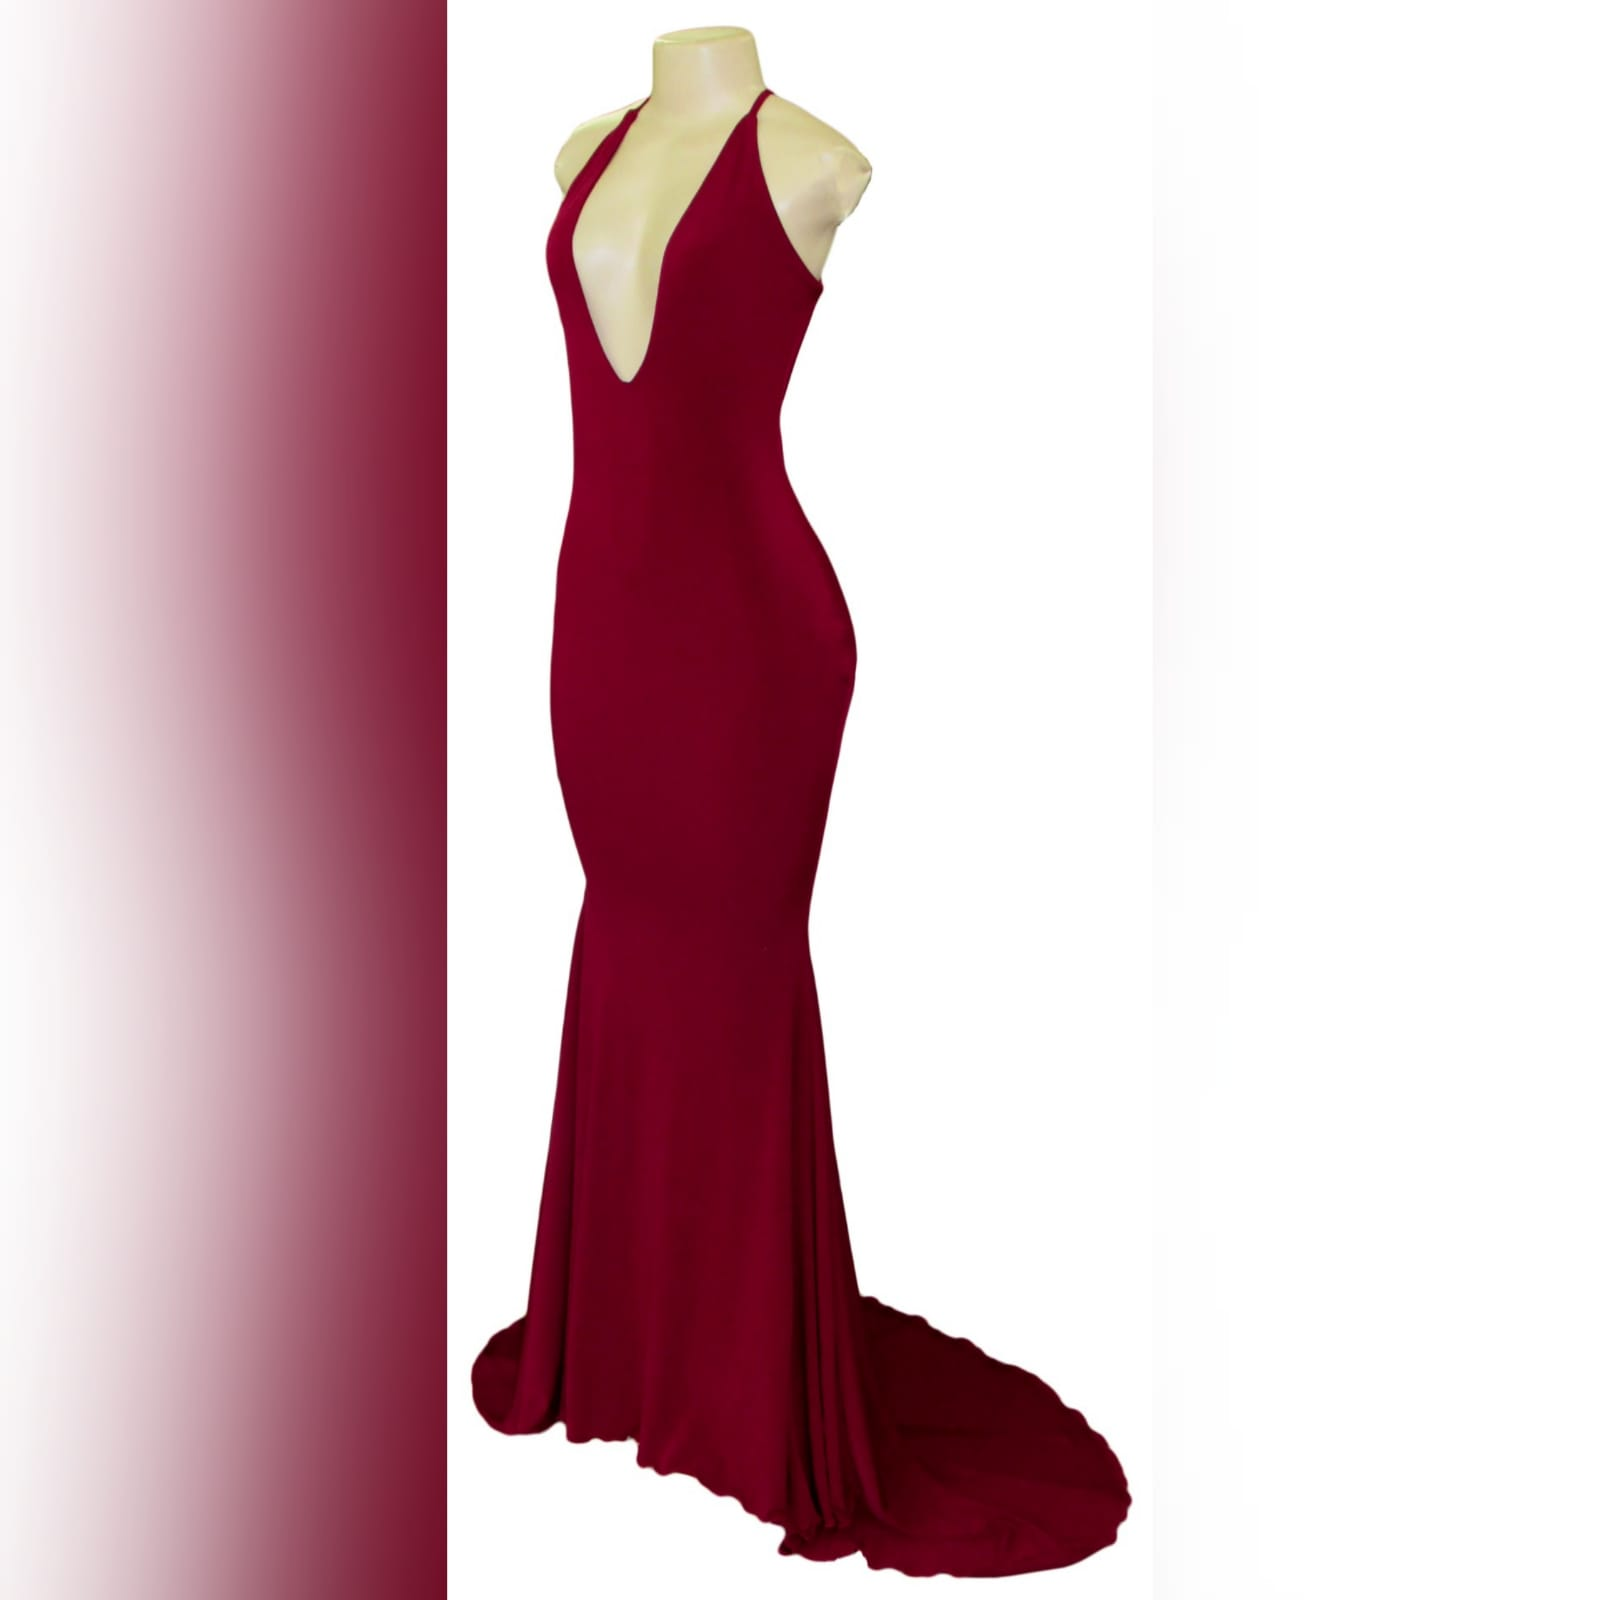 Deep red plunging neckline prom dress 10 deep red plunging neckline prom dress, low open back with thin should straps and a long train.